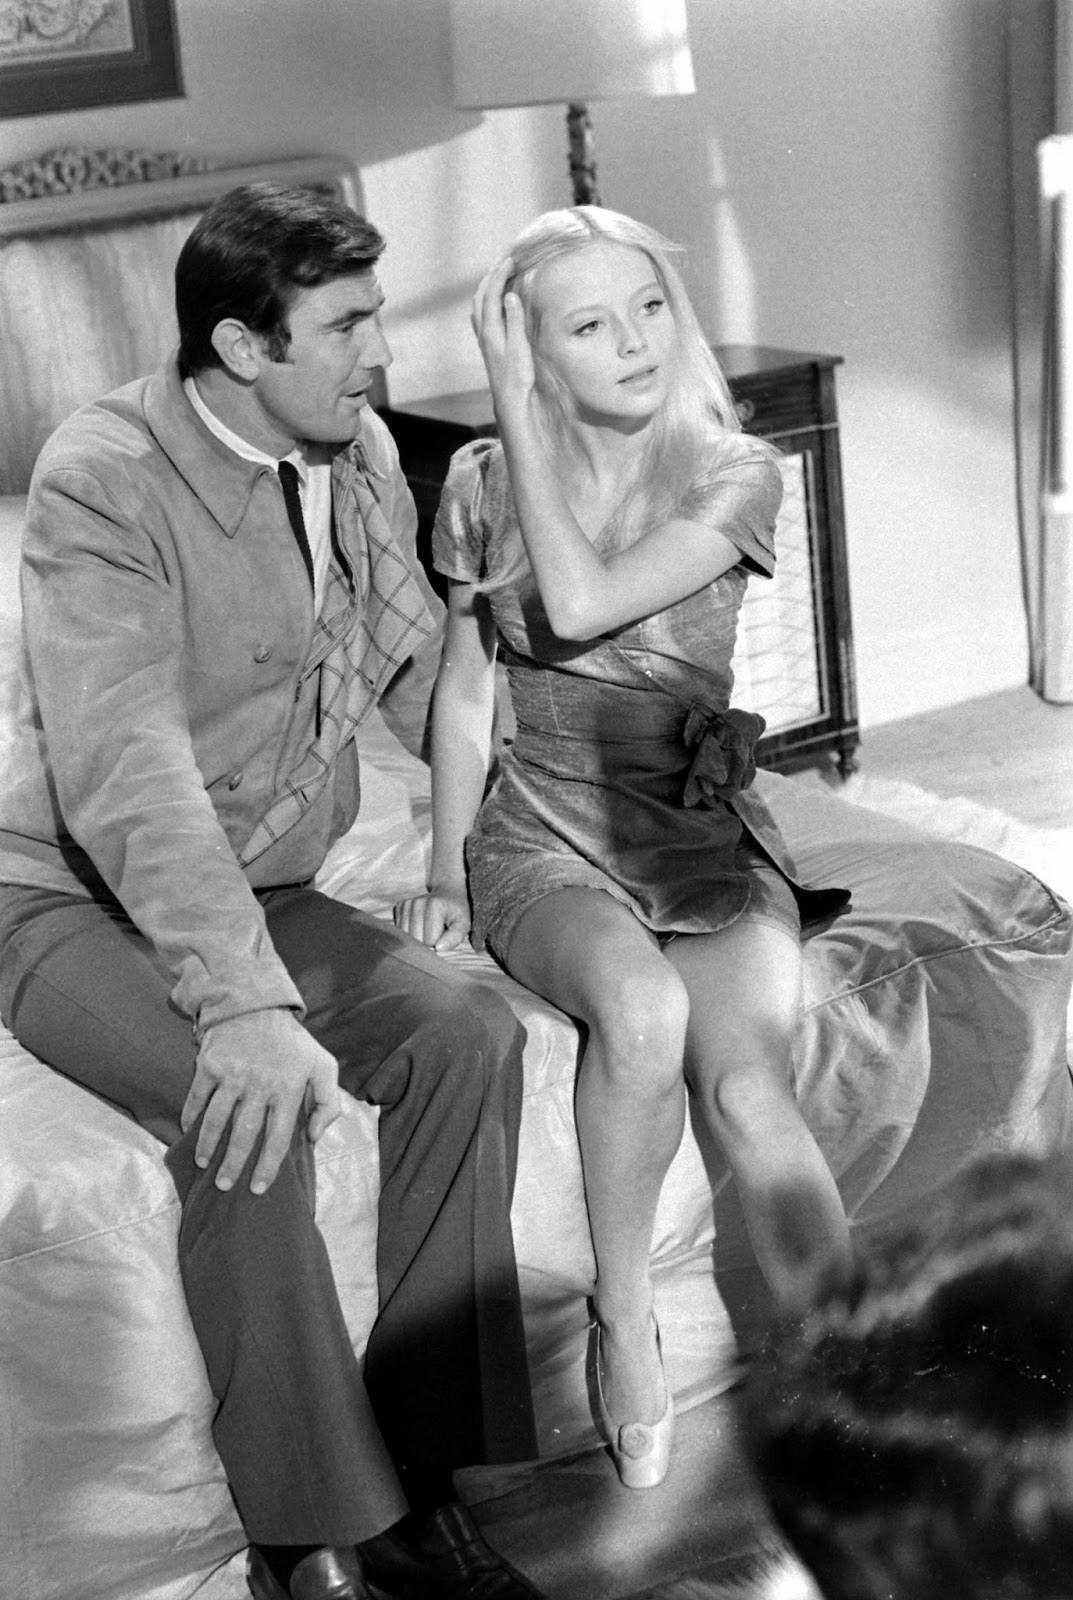 George Lazenby and Bond Girl hopeful Agneta Eckemyr during the auditions, 1967.